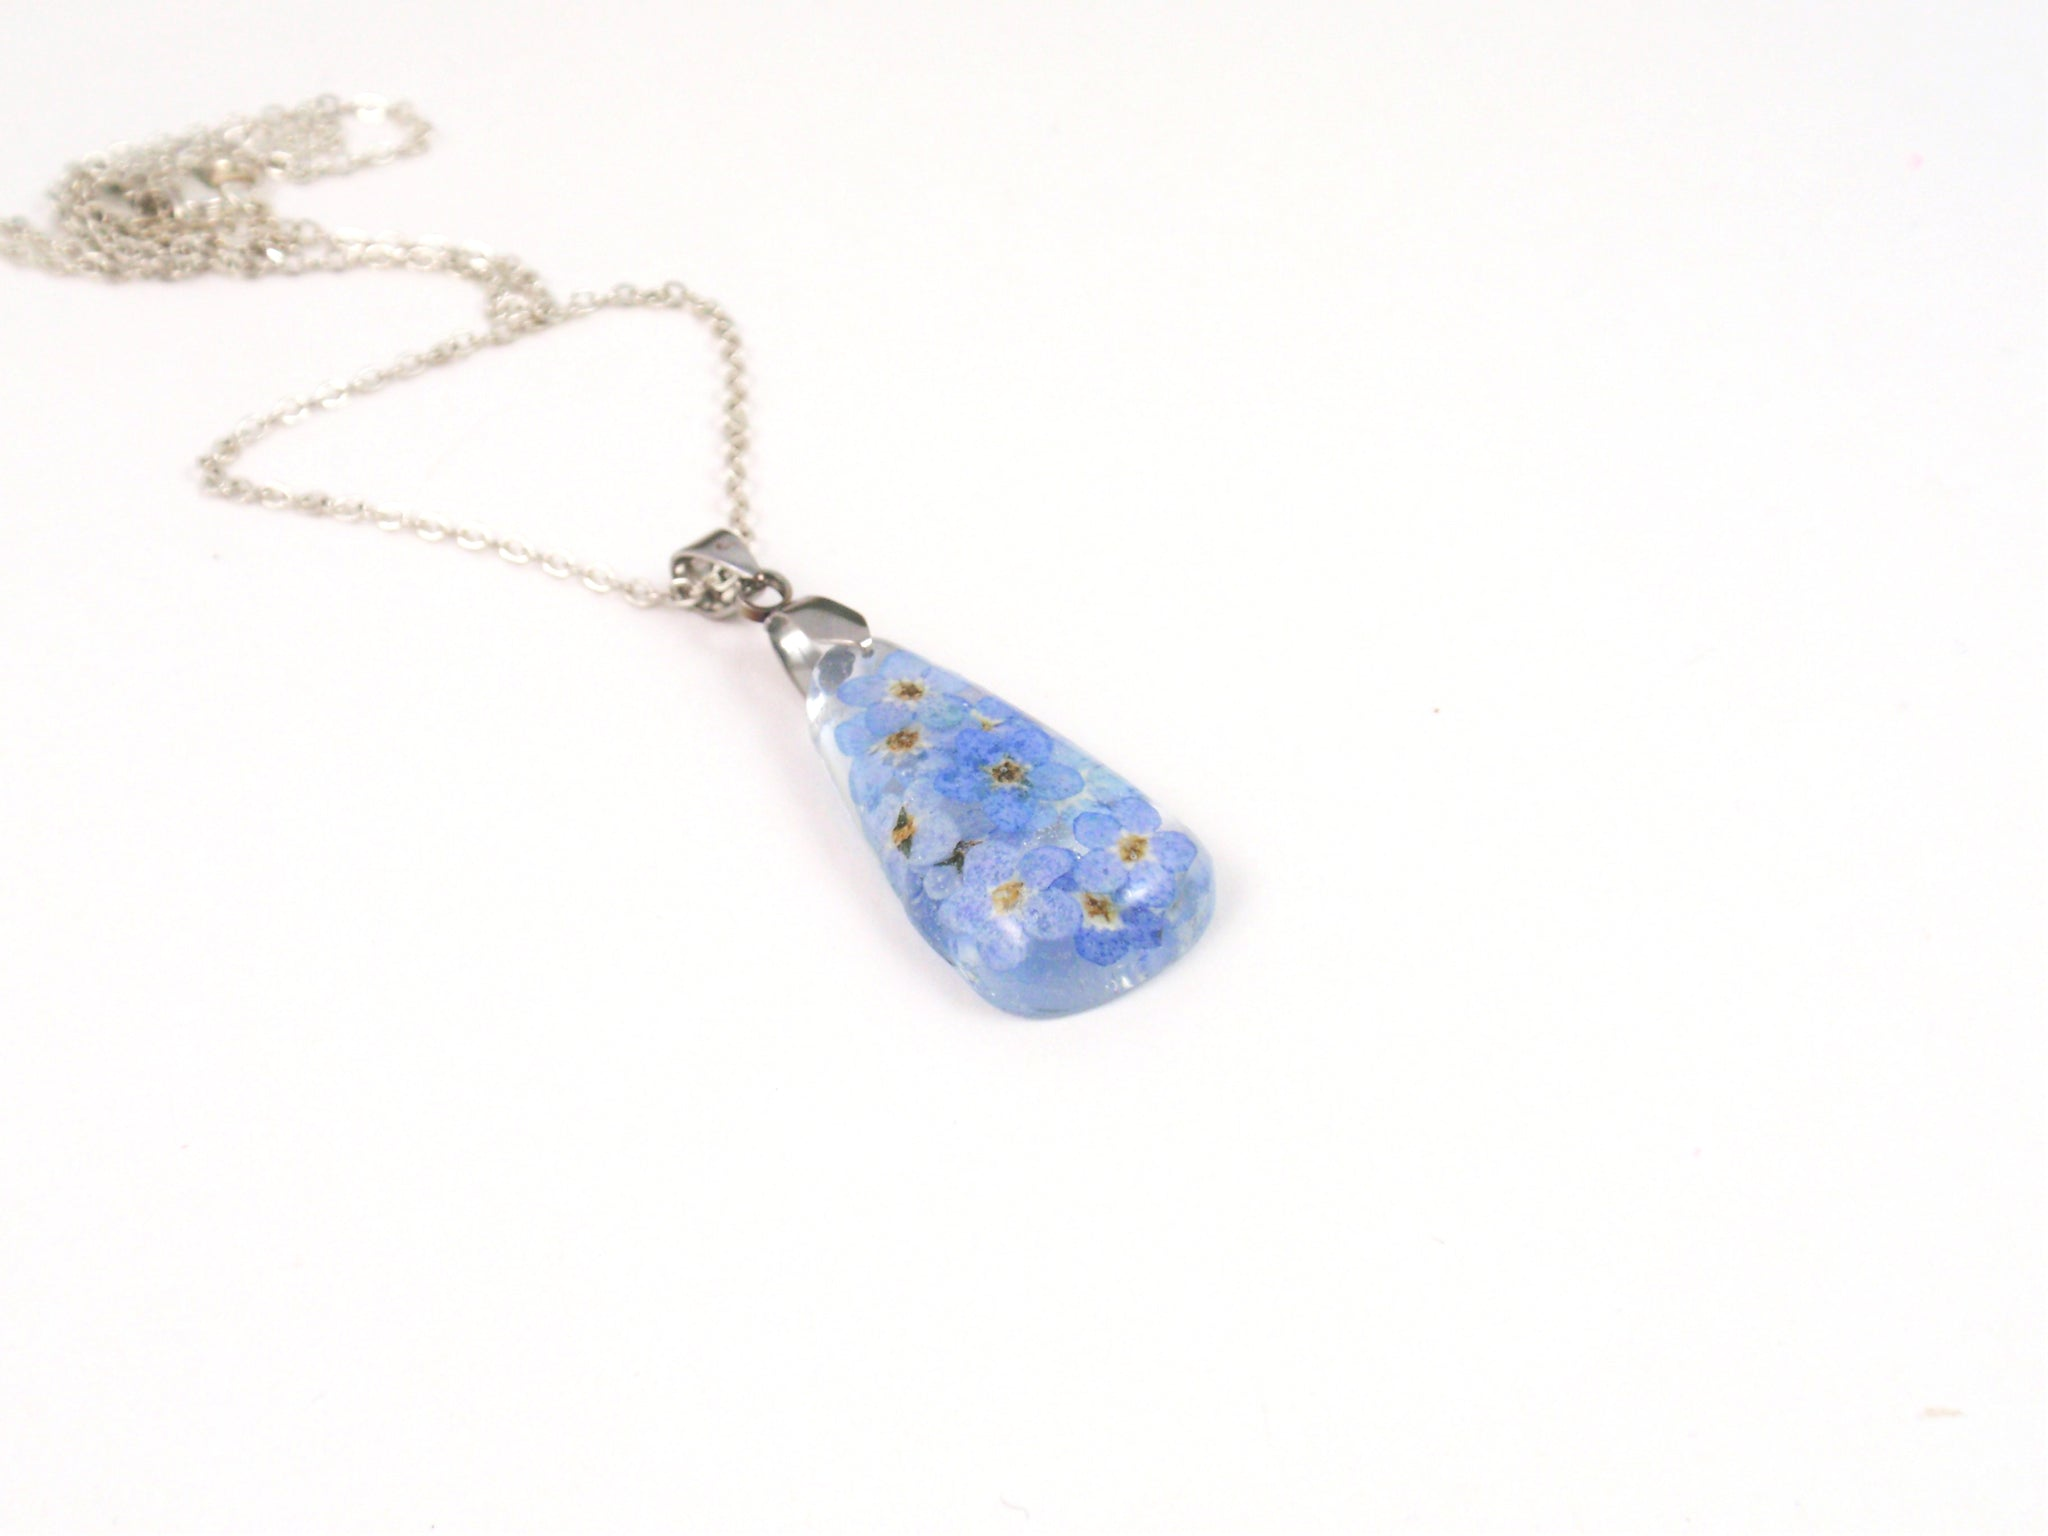 Flower resin jewelry romantic gift